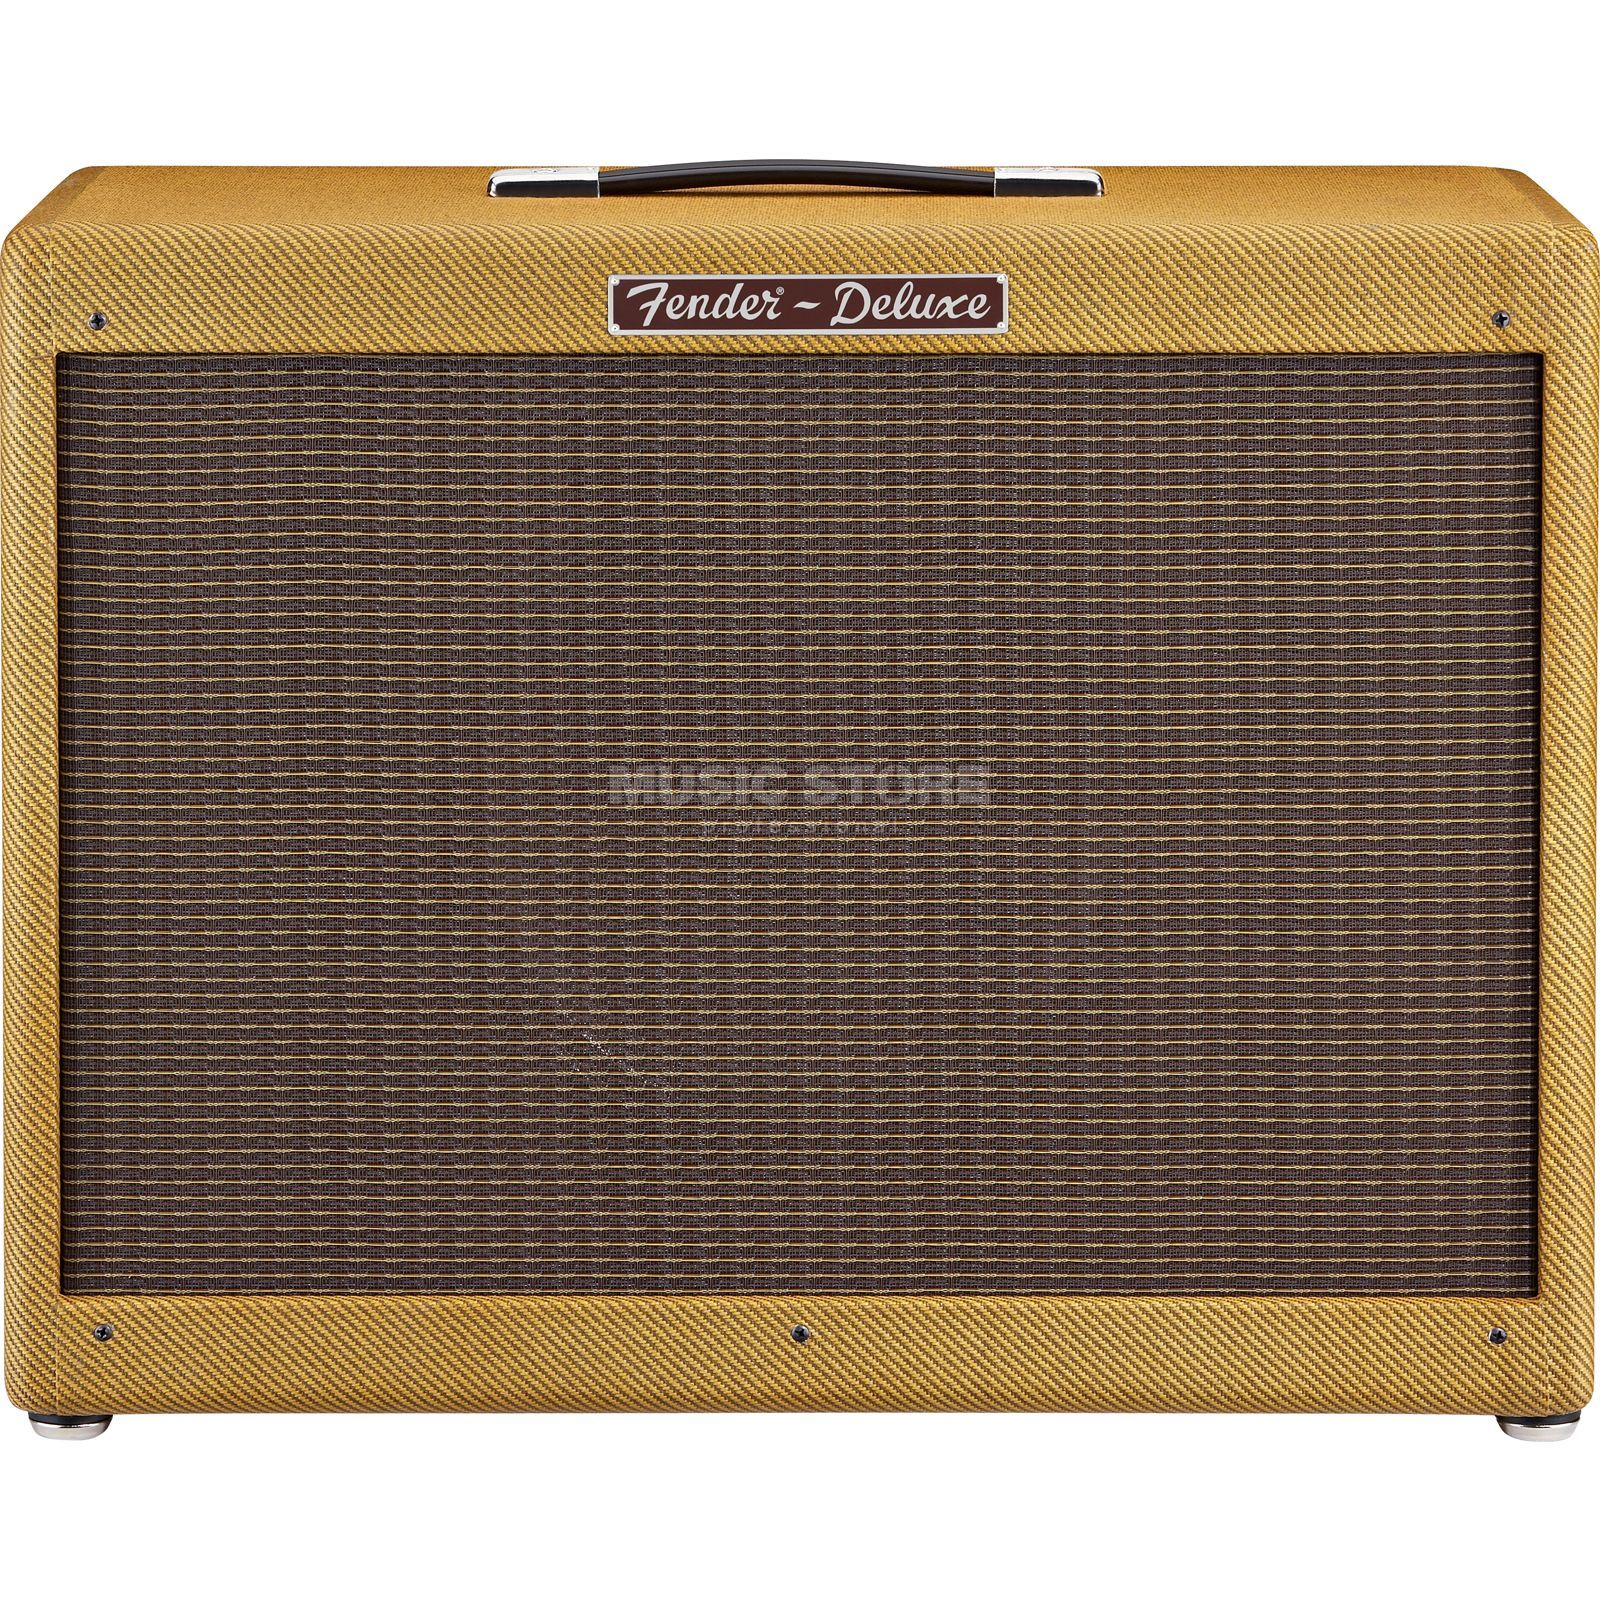 Fender Hot Rod Deluxe 112 Enclosure G uitar Speaker Cabinet   Product Image